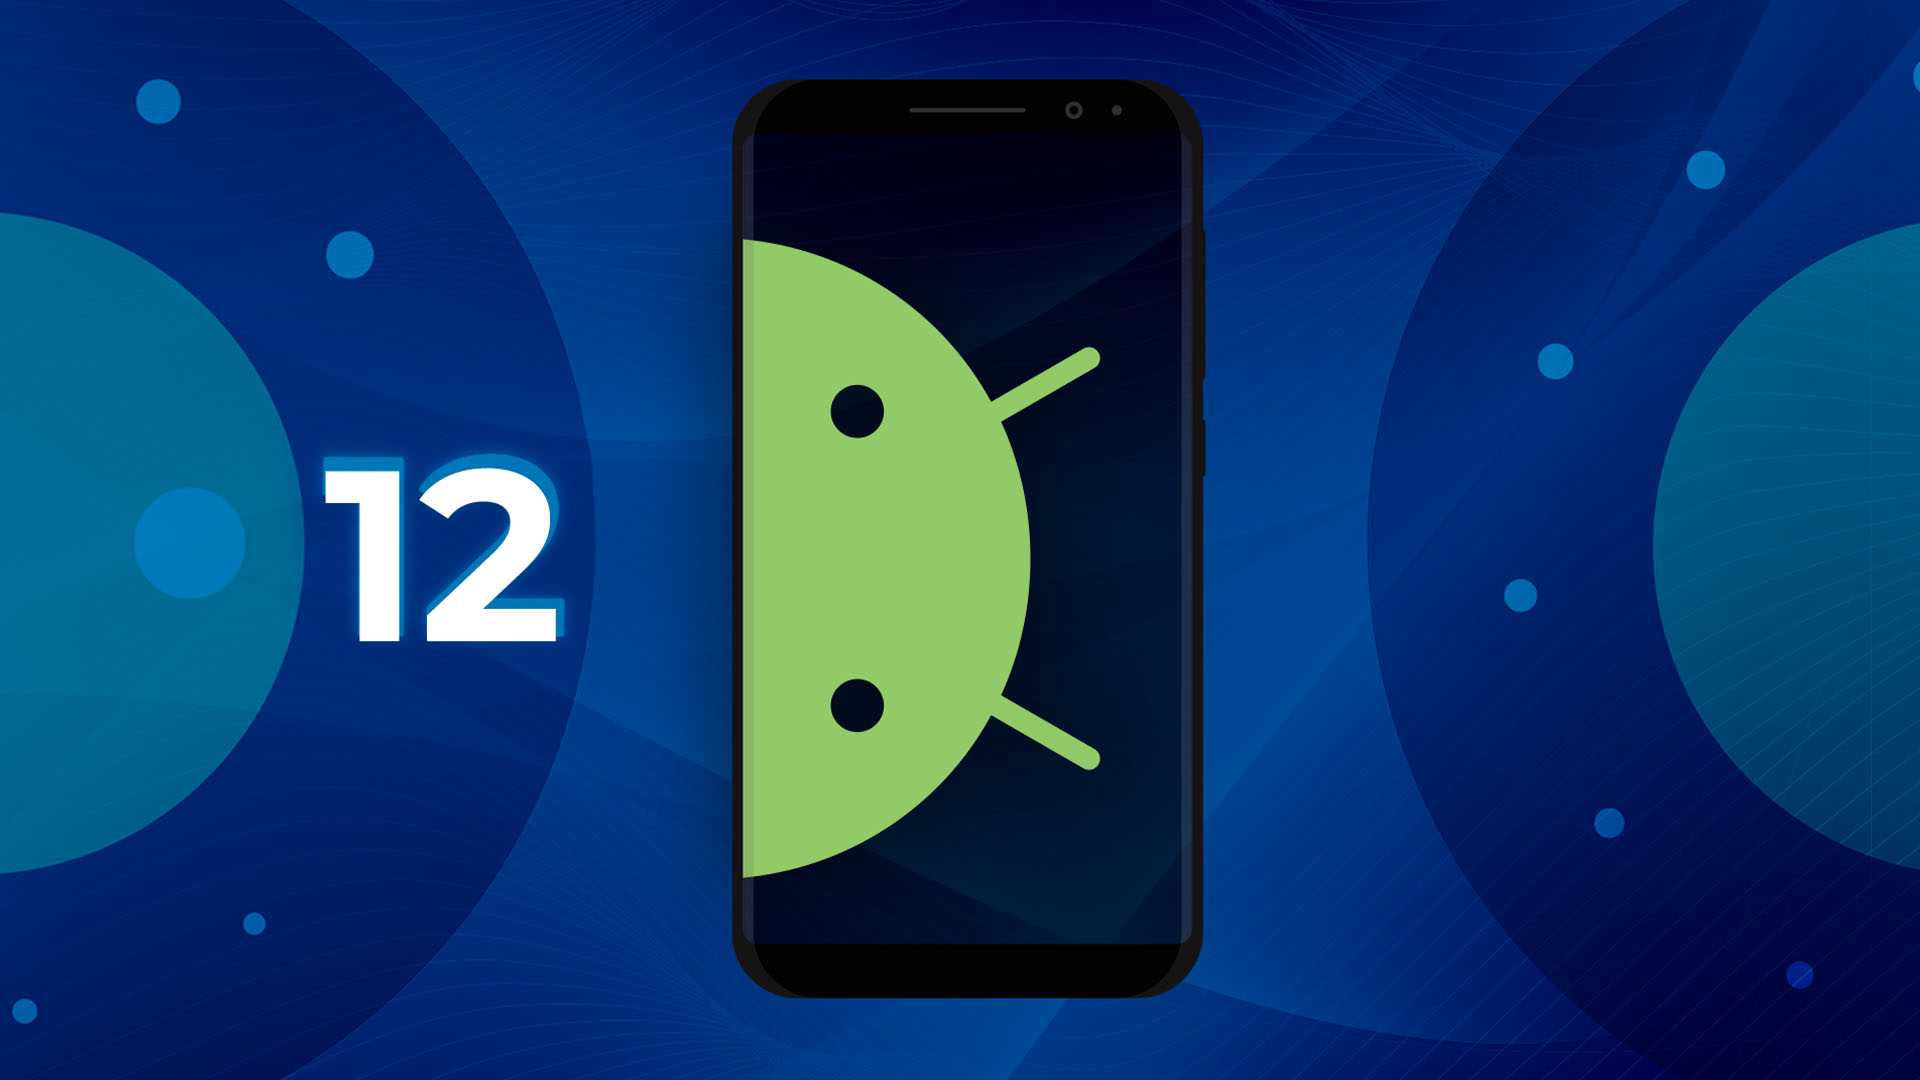 Android, Google Android, Android Logo, Android 12, Bugdroid, Android Figur, Android Männchen, Google Android 12